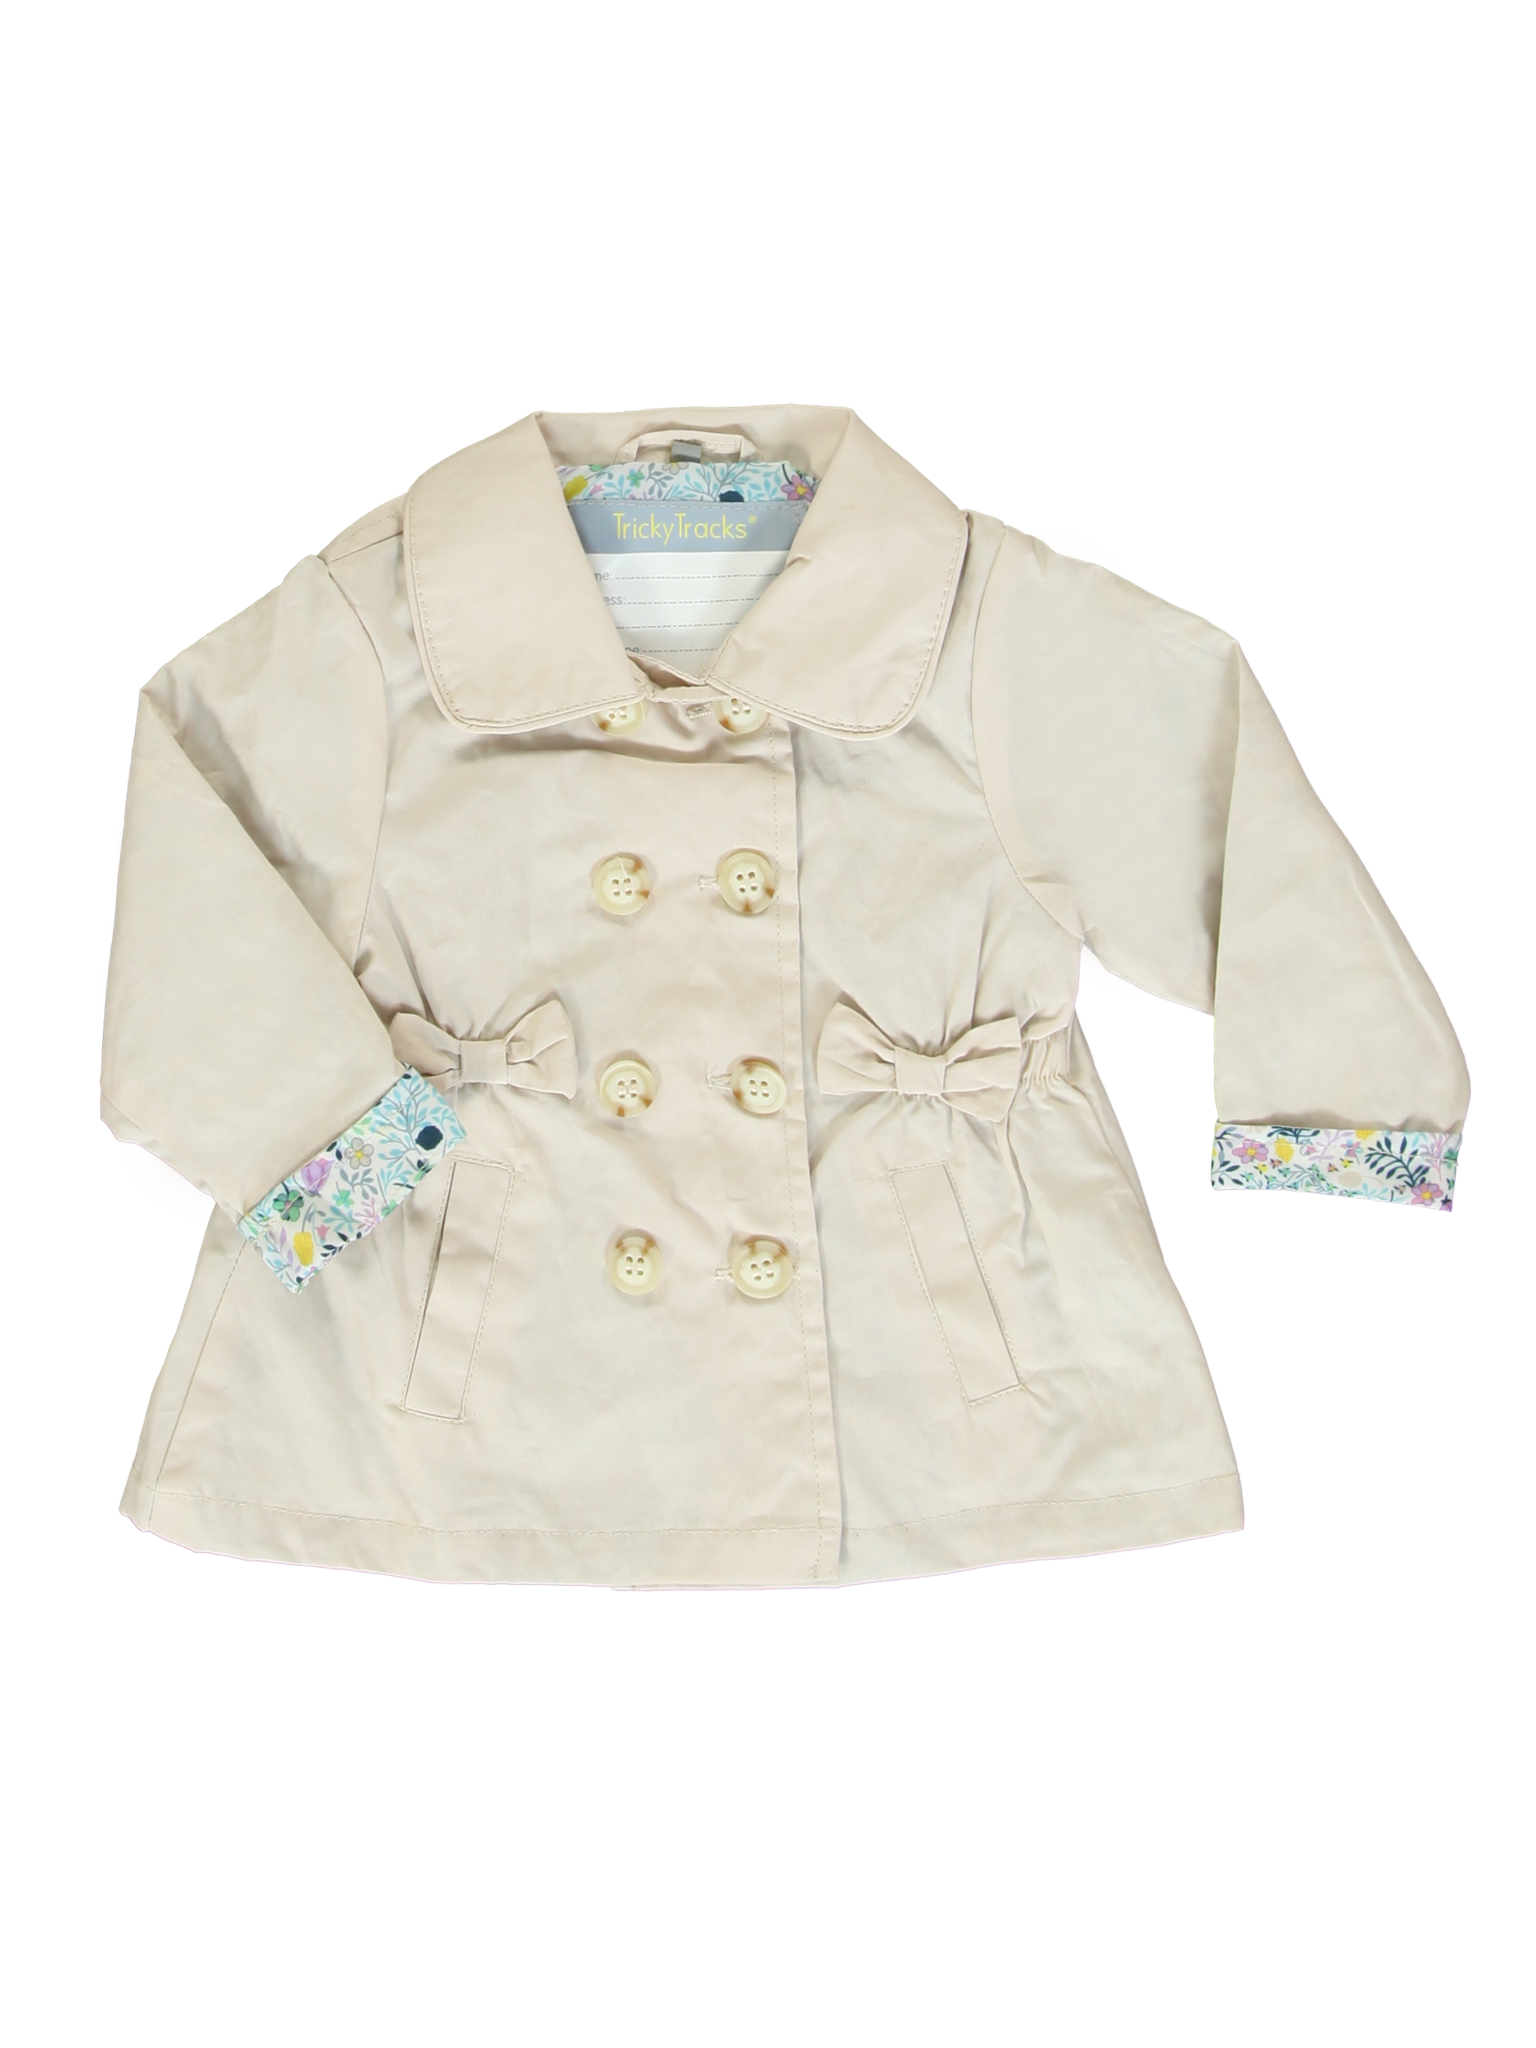 All Brands | Summerproducts Baby | Jacket | 16 pcs/box